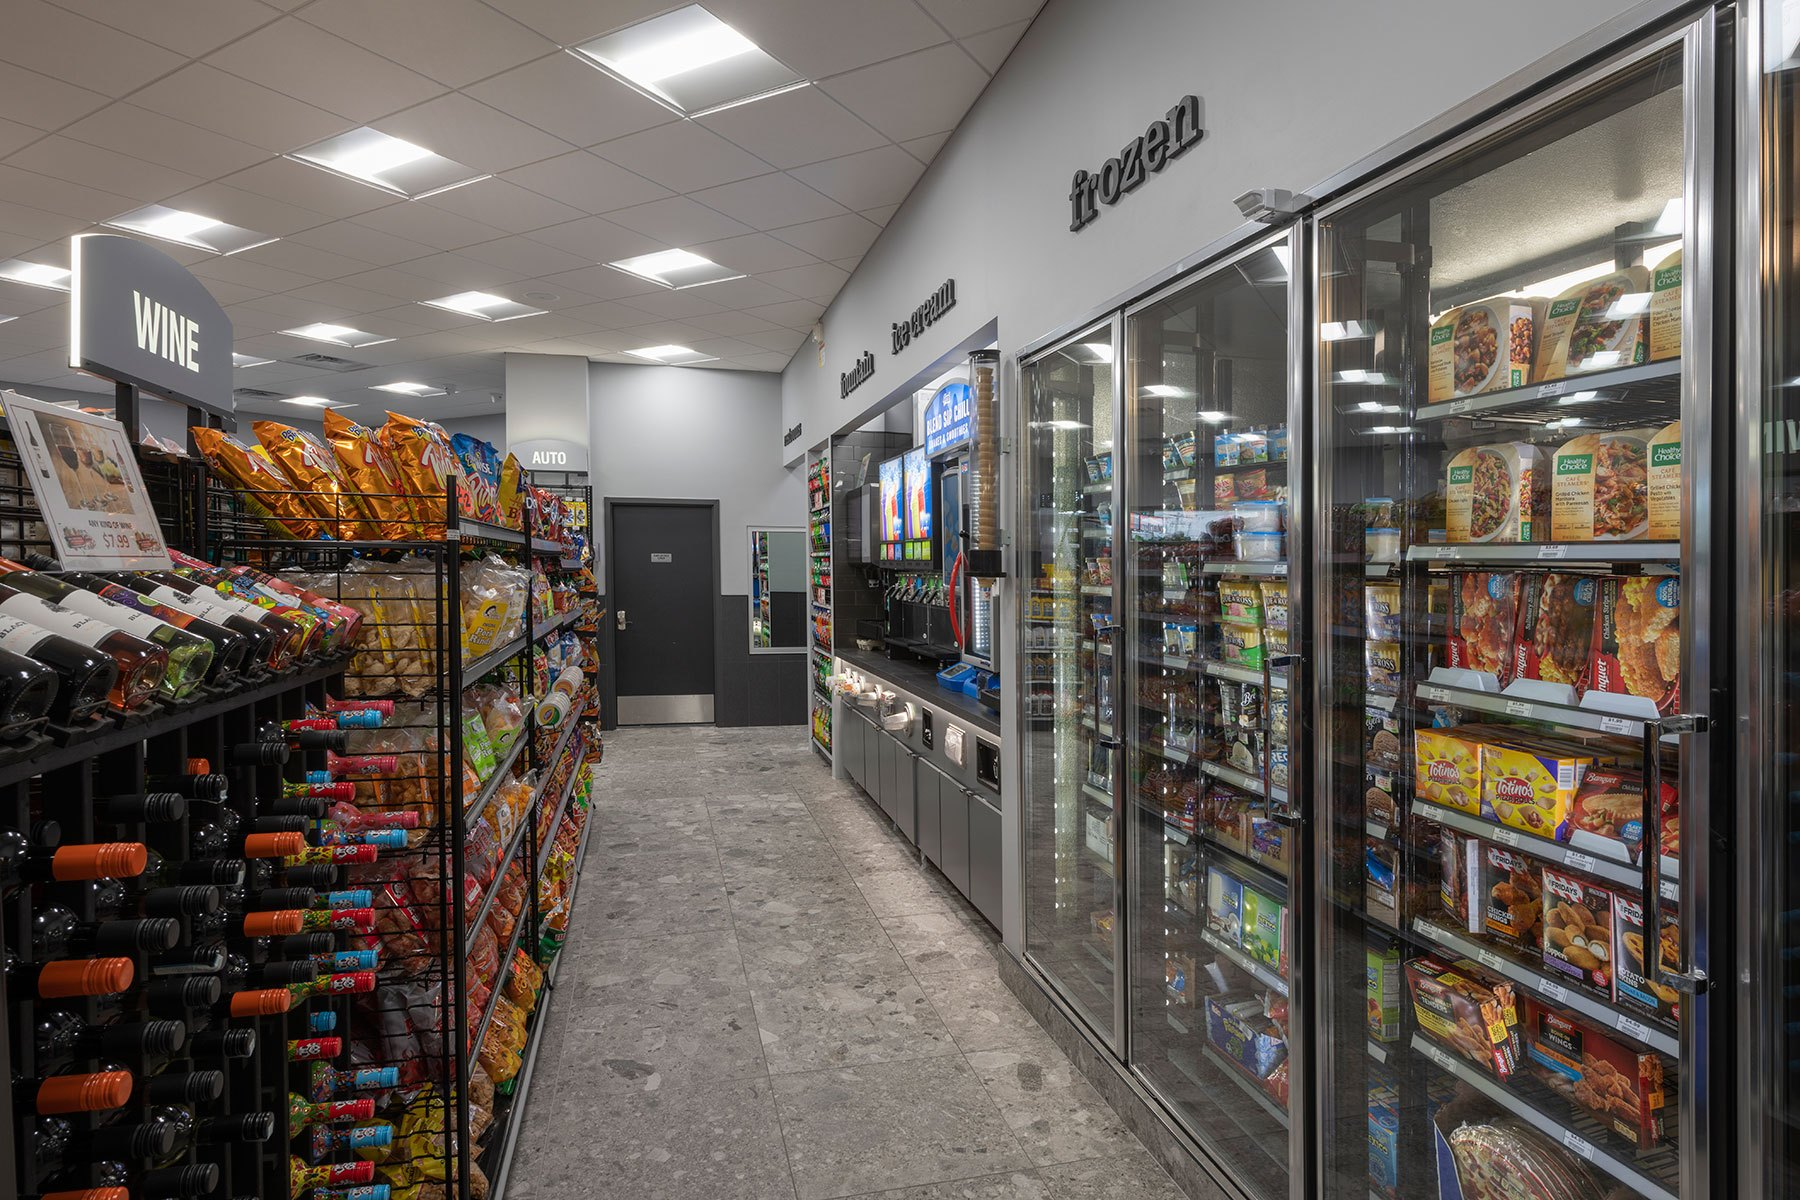 Frozen Foods - BP Gas Station in Waukegan Custom Home. America's Custom Home Builders: New Construction, Remodeling, Restoration Services. Residential and Commercial.